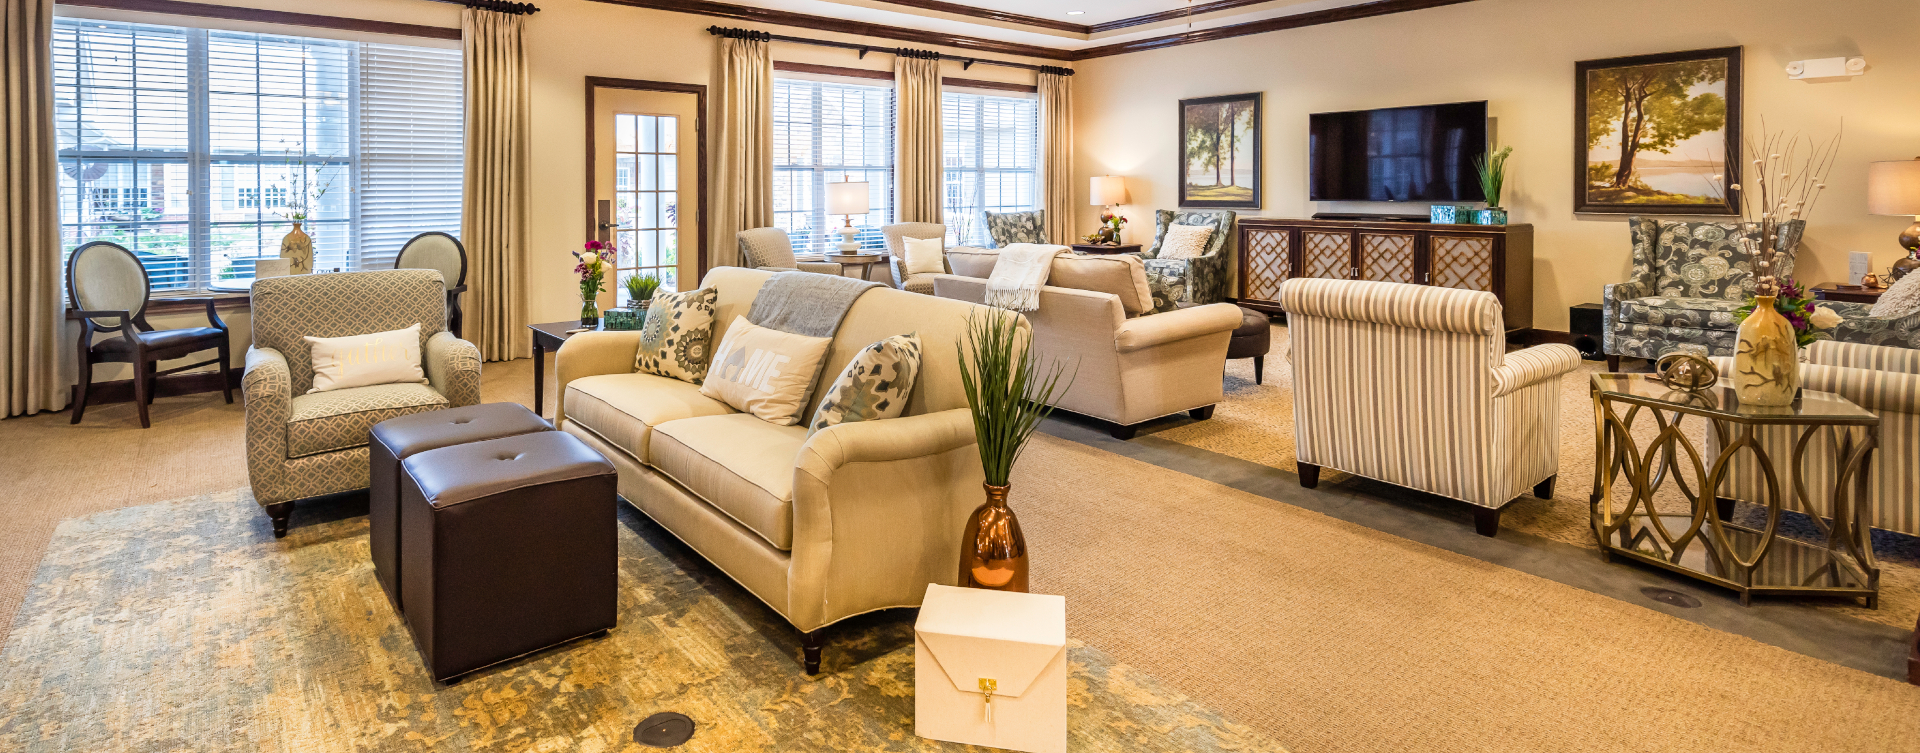 Enjoy a good book in the living room at Bickford of Shelby Township